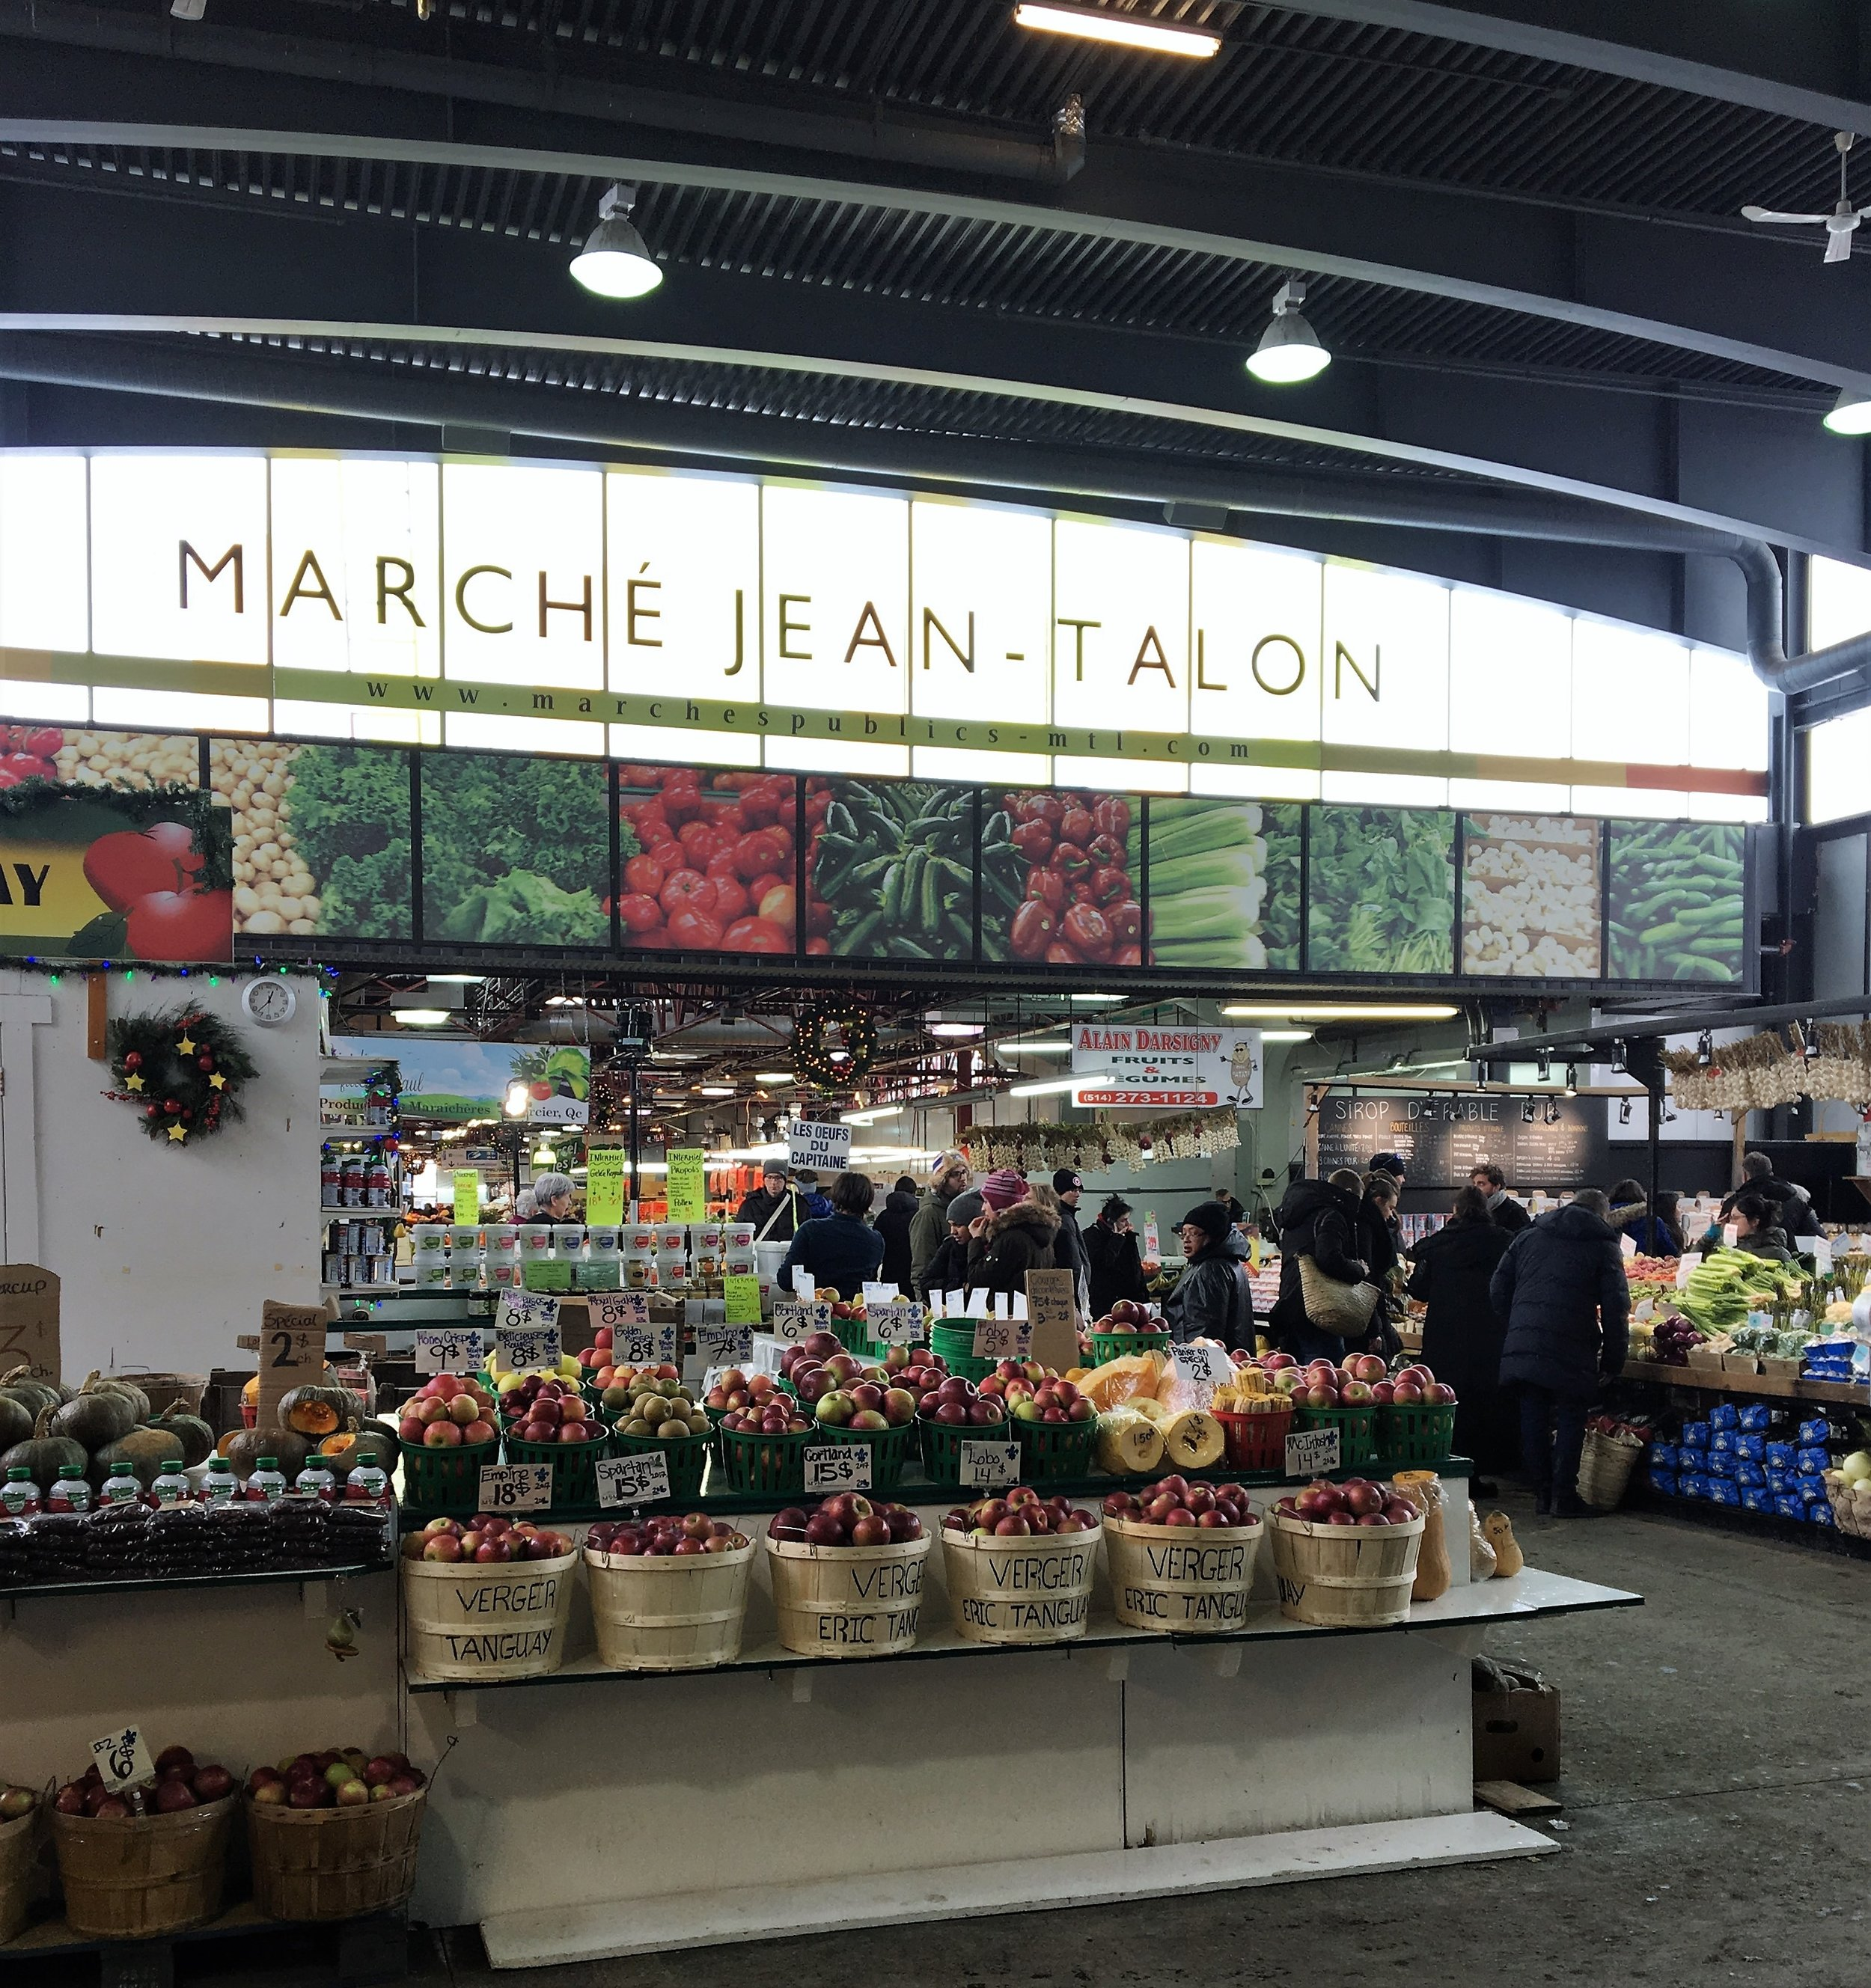 An indoor activity we partook in was a visit to the  Jean-Talon Market , an indoor public market in Little Italy. It is one of the oldest public markets in Montreal. Whenever I visit markets like this in other cities, I wish there were more in Boston. We stopped by a few stalls to try out some snacks and made some small purchases to bring back home.